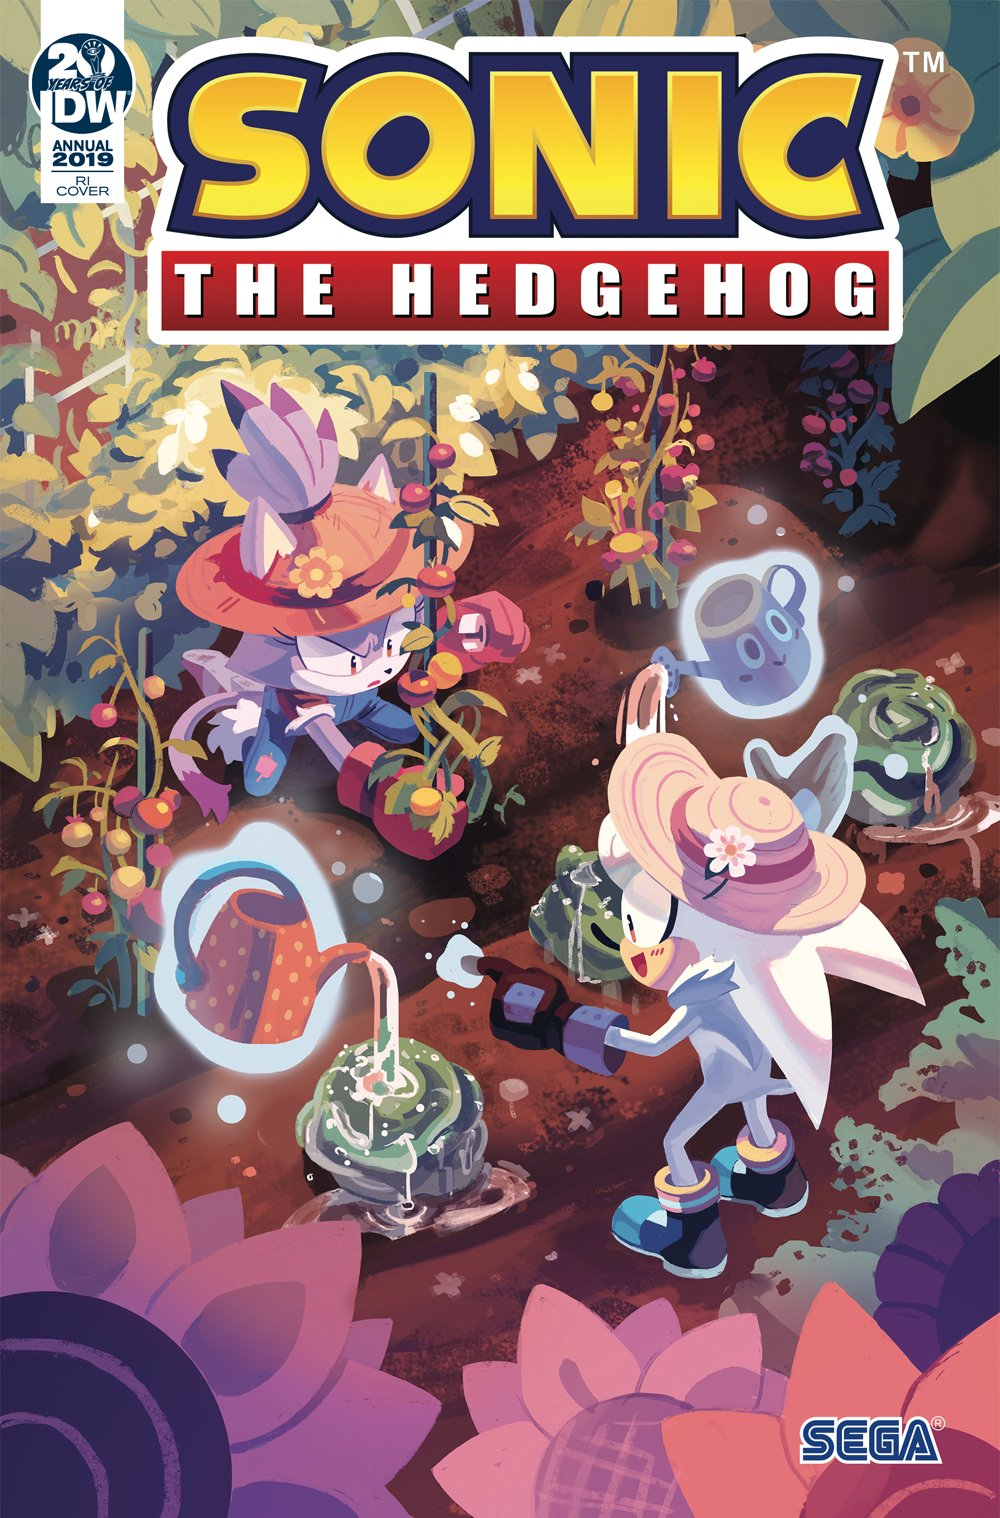 Sonic the Hedgehog Annual 2019 (March 2019) (retailer incentive)